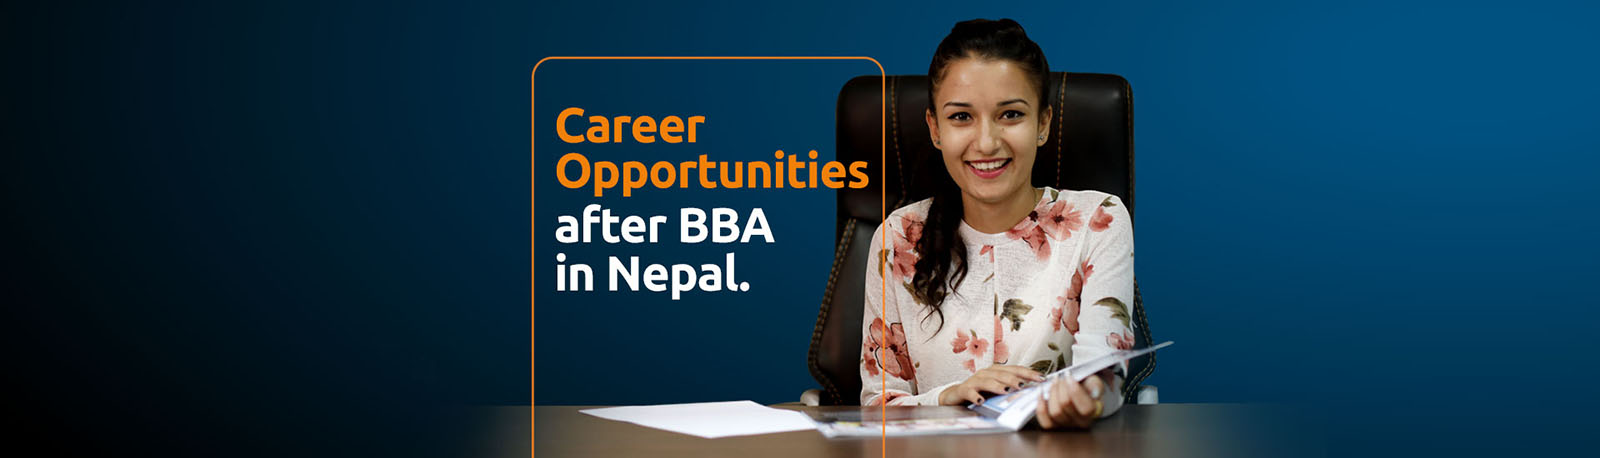 Career Opportunities after BBA in Nepal